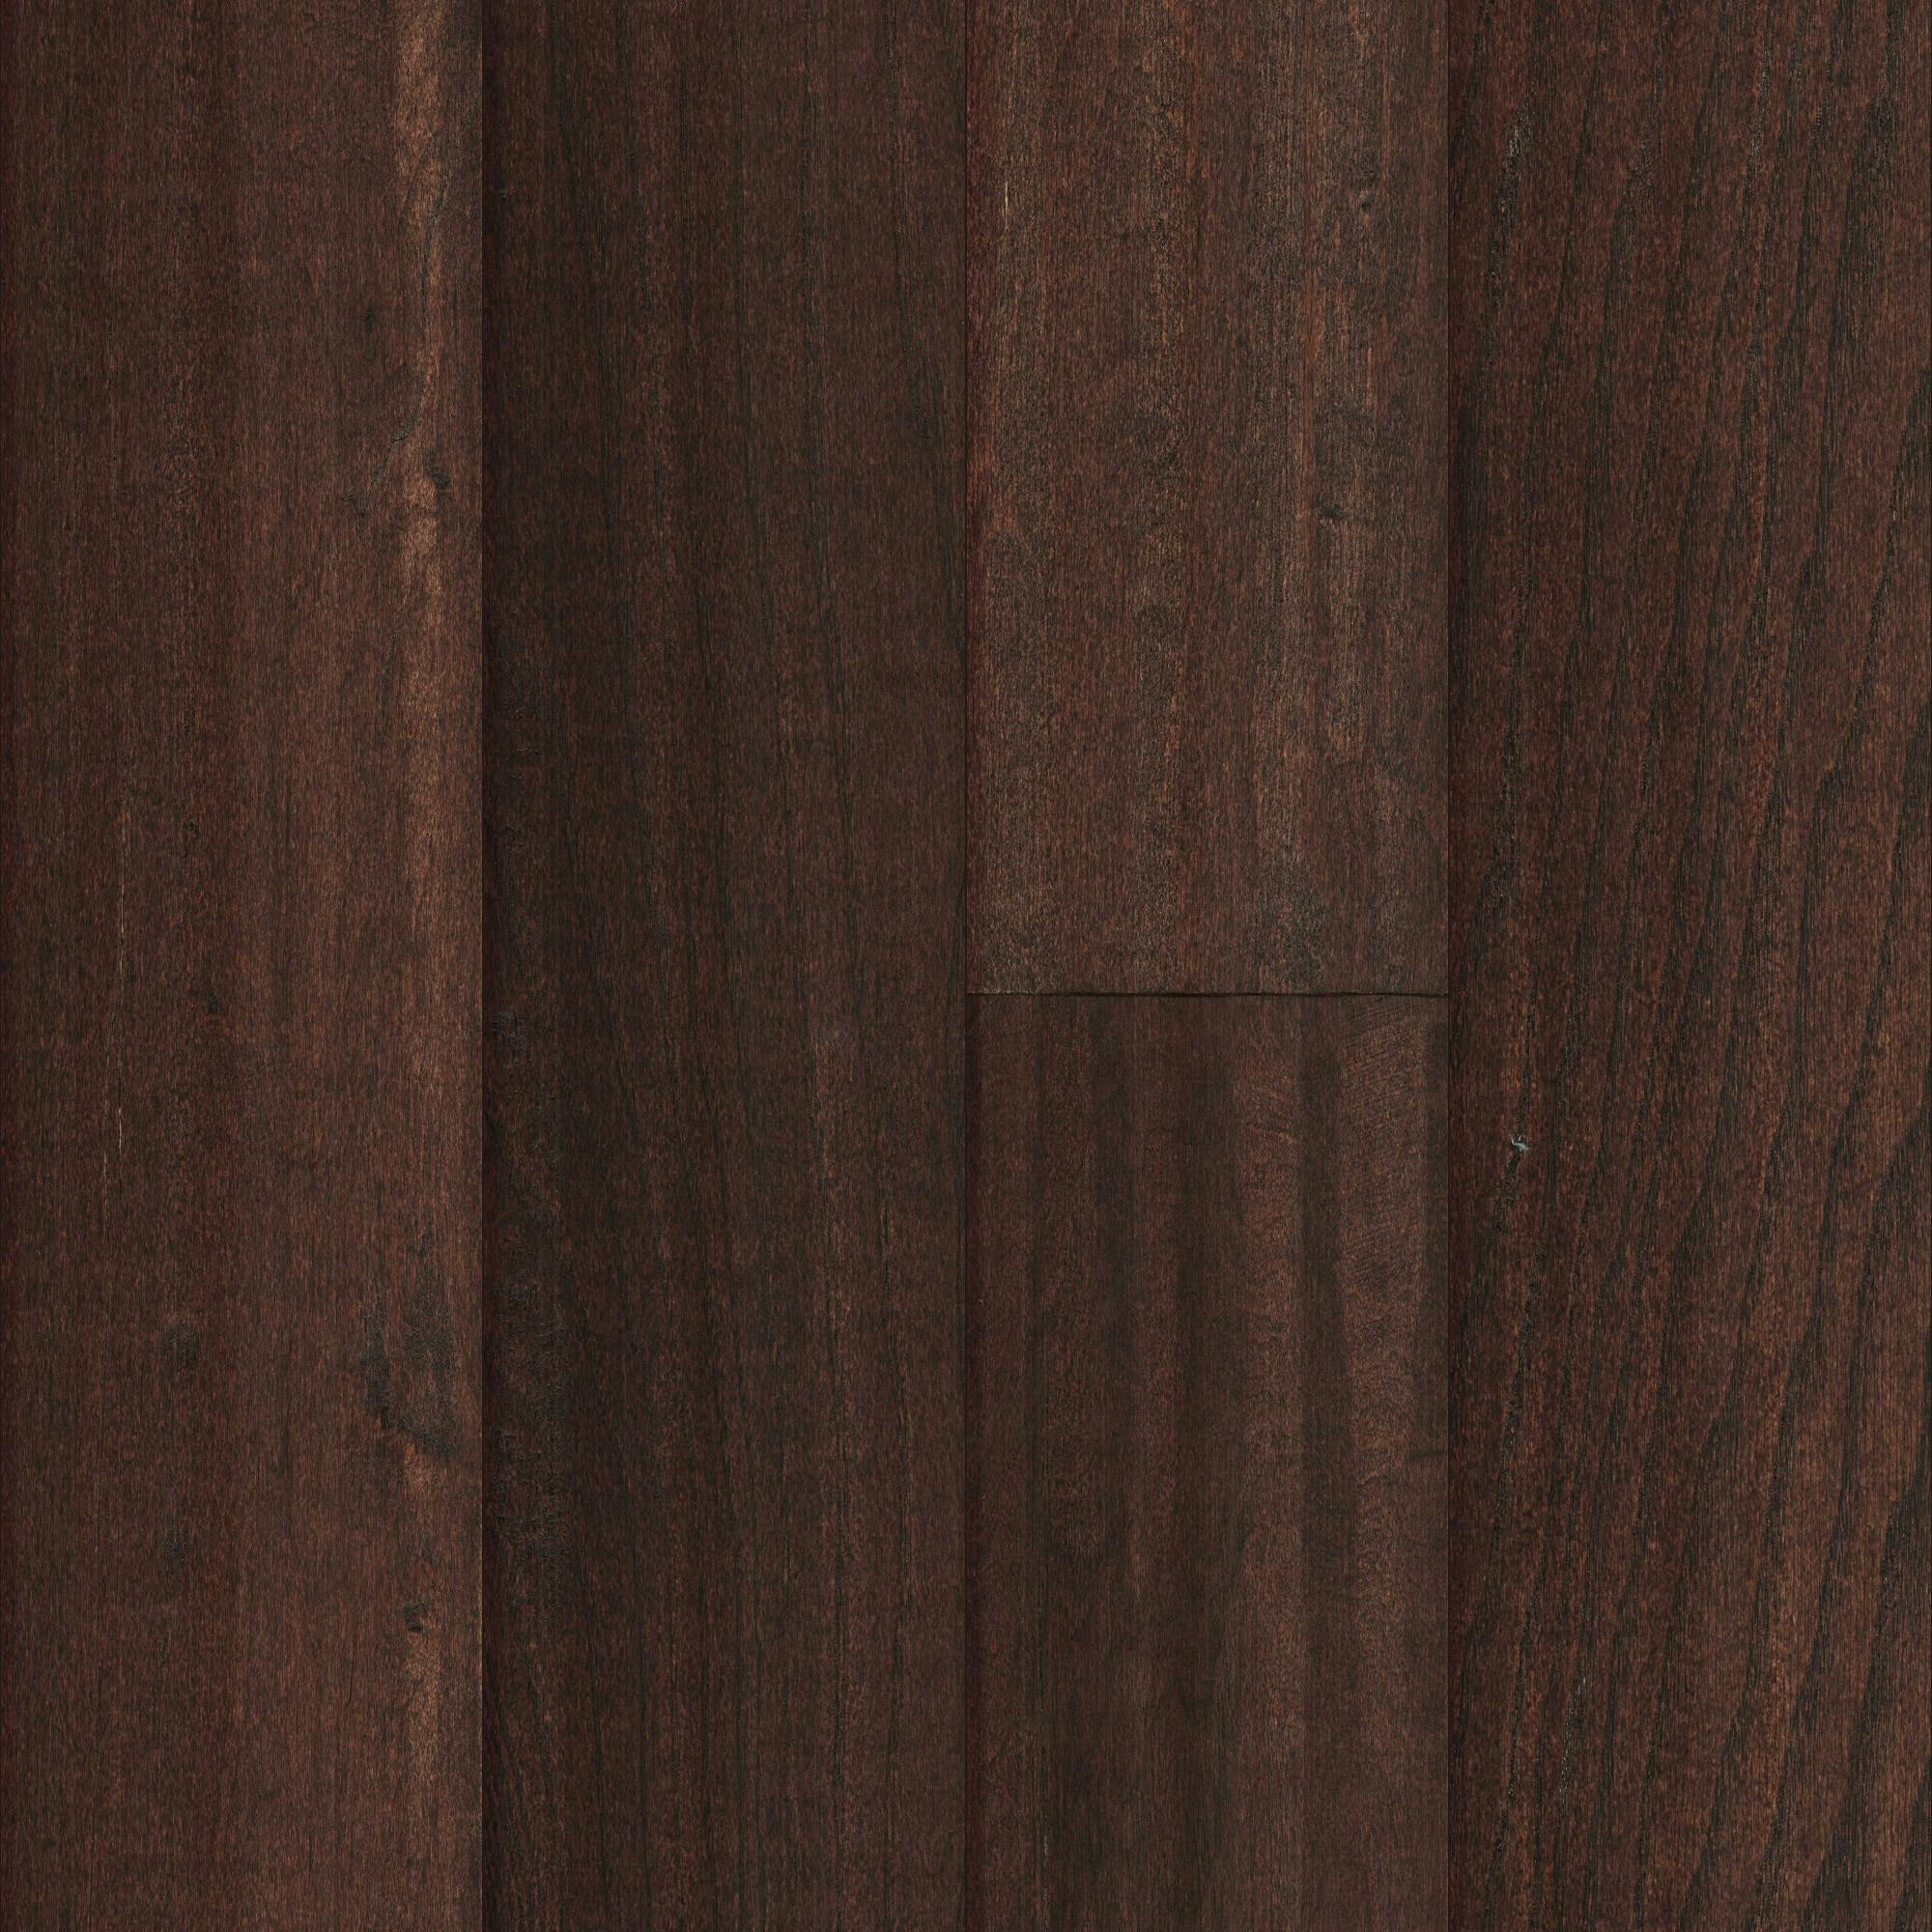 hardwood floor acclimation time of mullican lincolnshire sculpted maple cappuccino 5 engineered intended for mullican lincolnshire sculpted maple cappuccino 5 engineered hardwood flooring